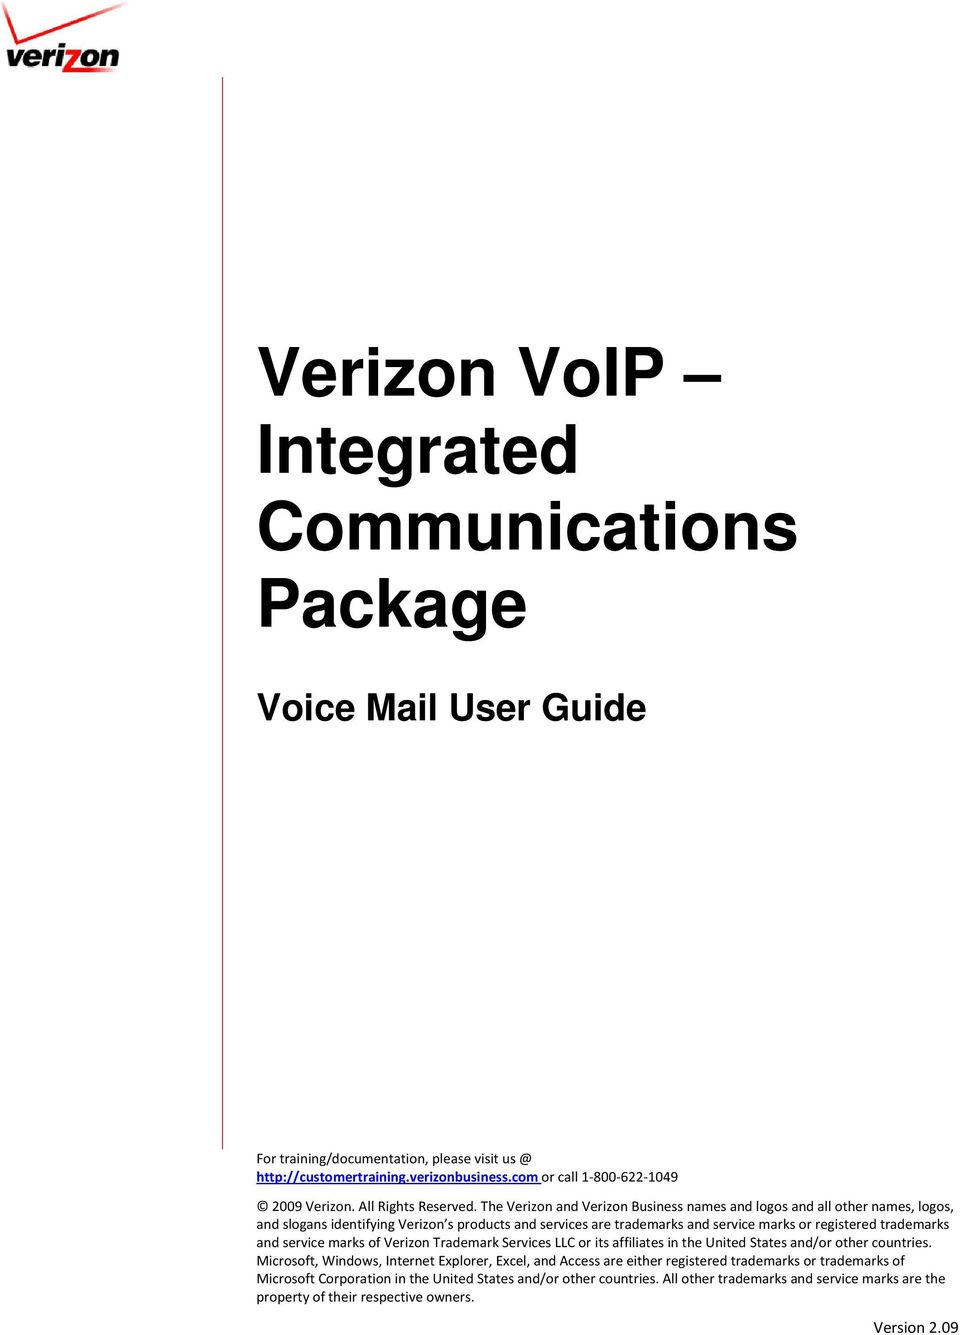 The Verizon and Verizon Business names and logos and all other names, logos, and slogans identifying Verizon s products and services are trademarks and service marks or registered trademarks and